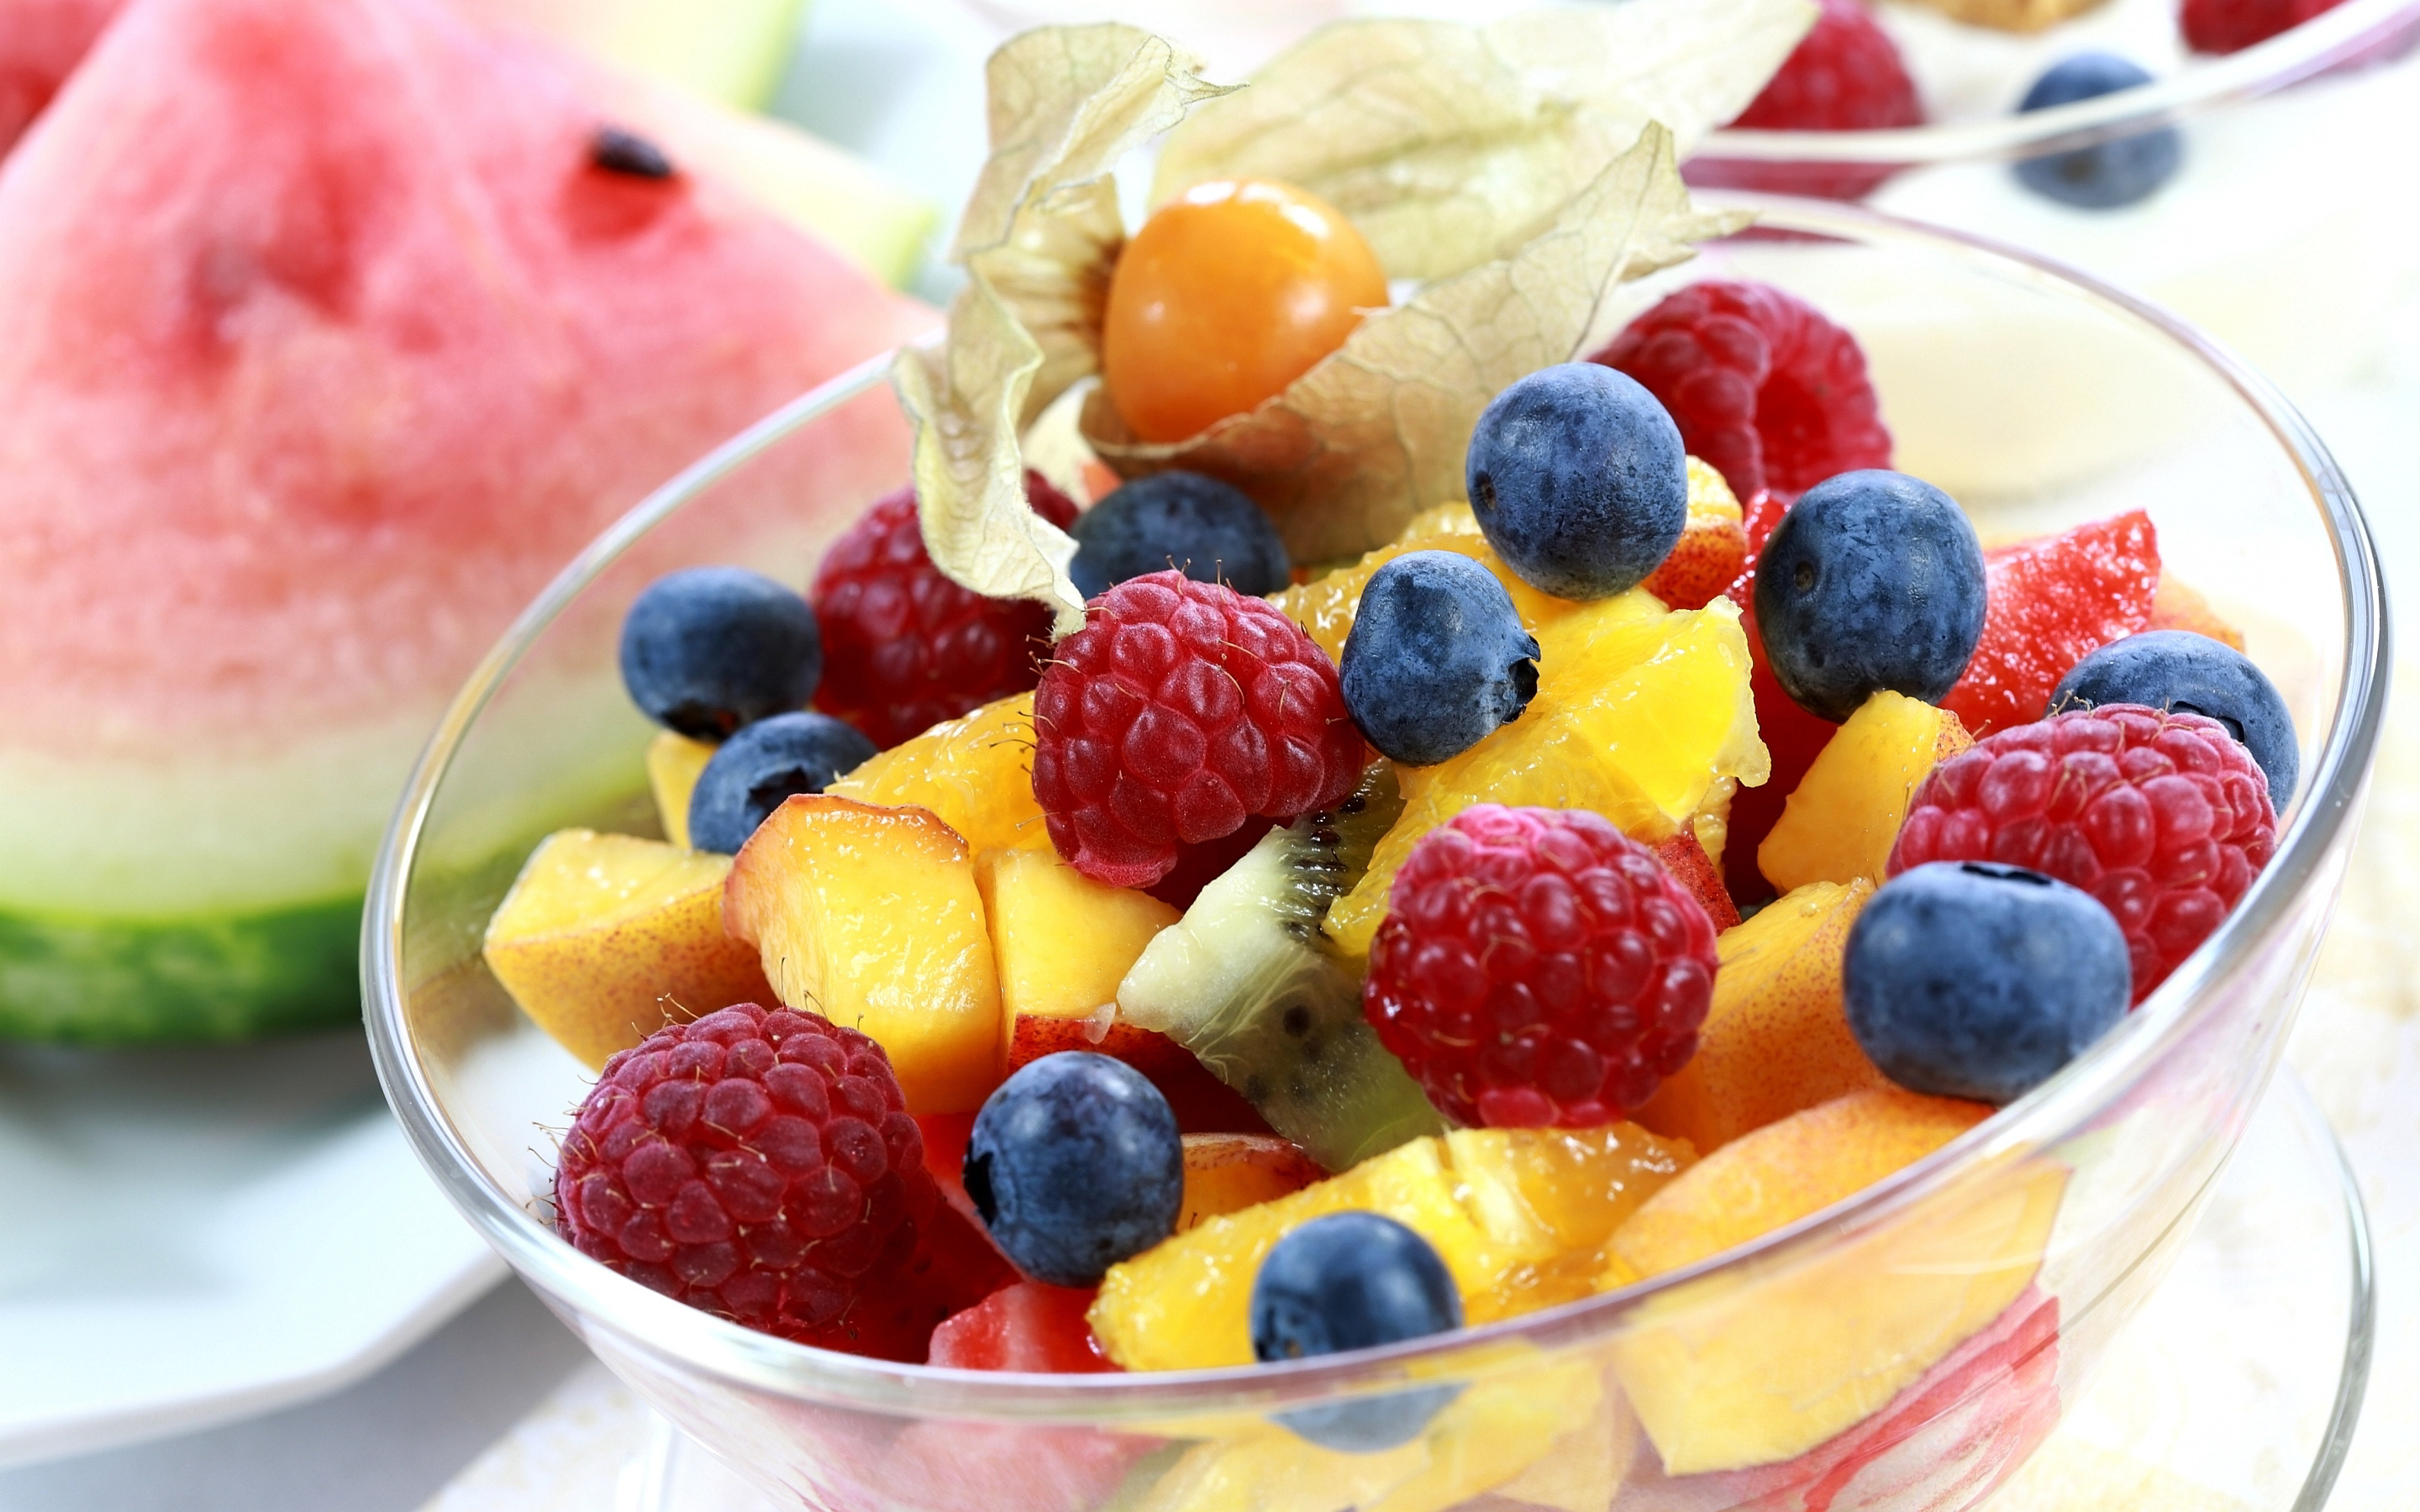 fruits salad background